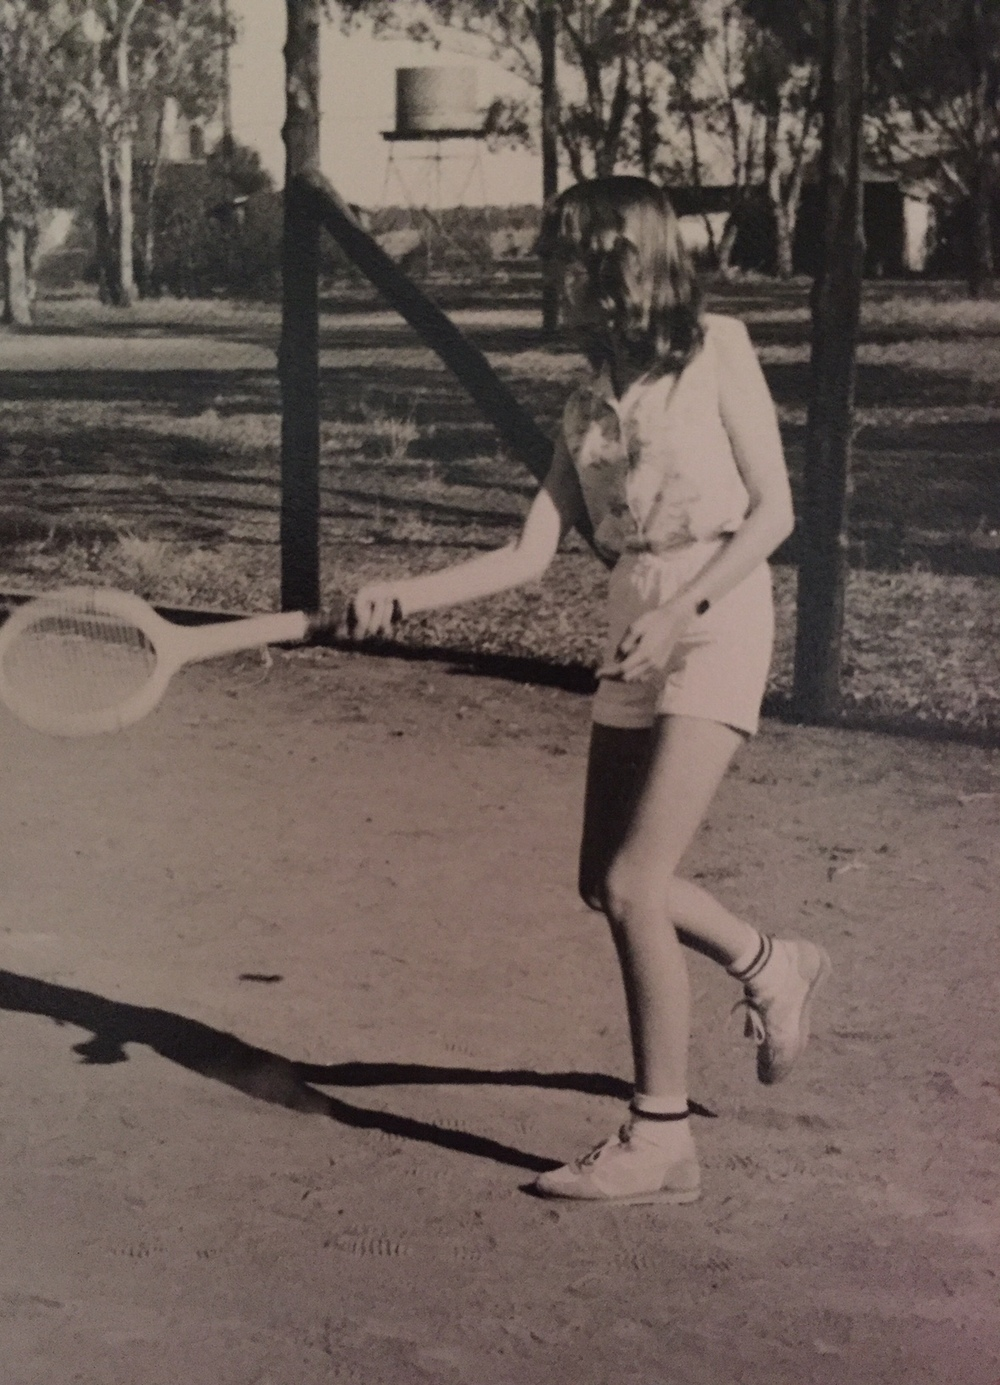 Me at a church tennis outing. I look unenthusiastic, I know, but those old wooden racquets were incredibly small which made ball-contact almost impossible. The sponge cake at afternoon tea, however, was large and delicious and had my total dedication.